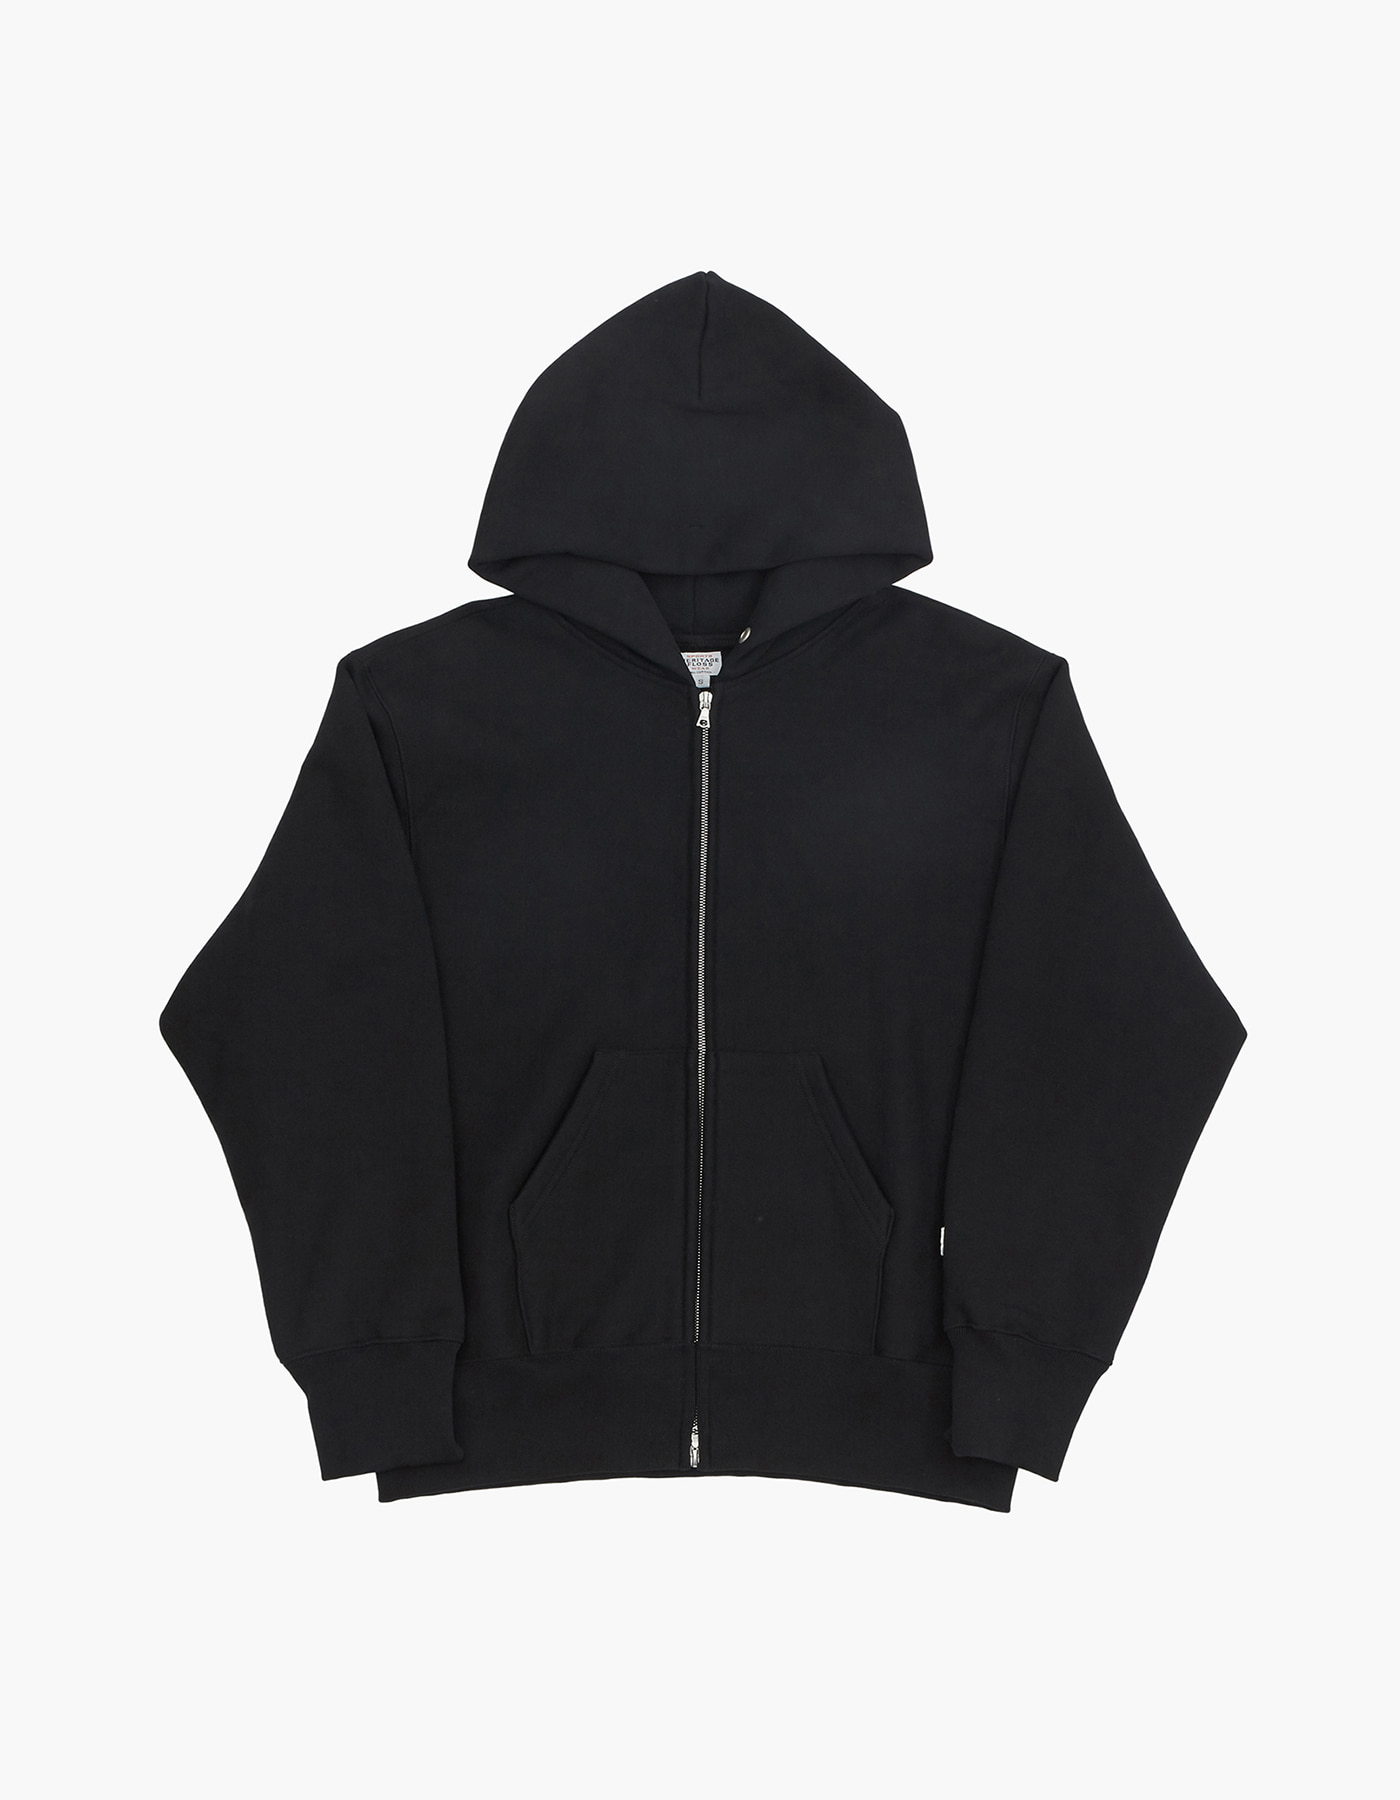 HELINOX X HERITAGEFLOSS 221 REVERSE ZIP-UP / BLACK